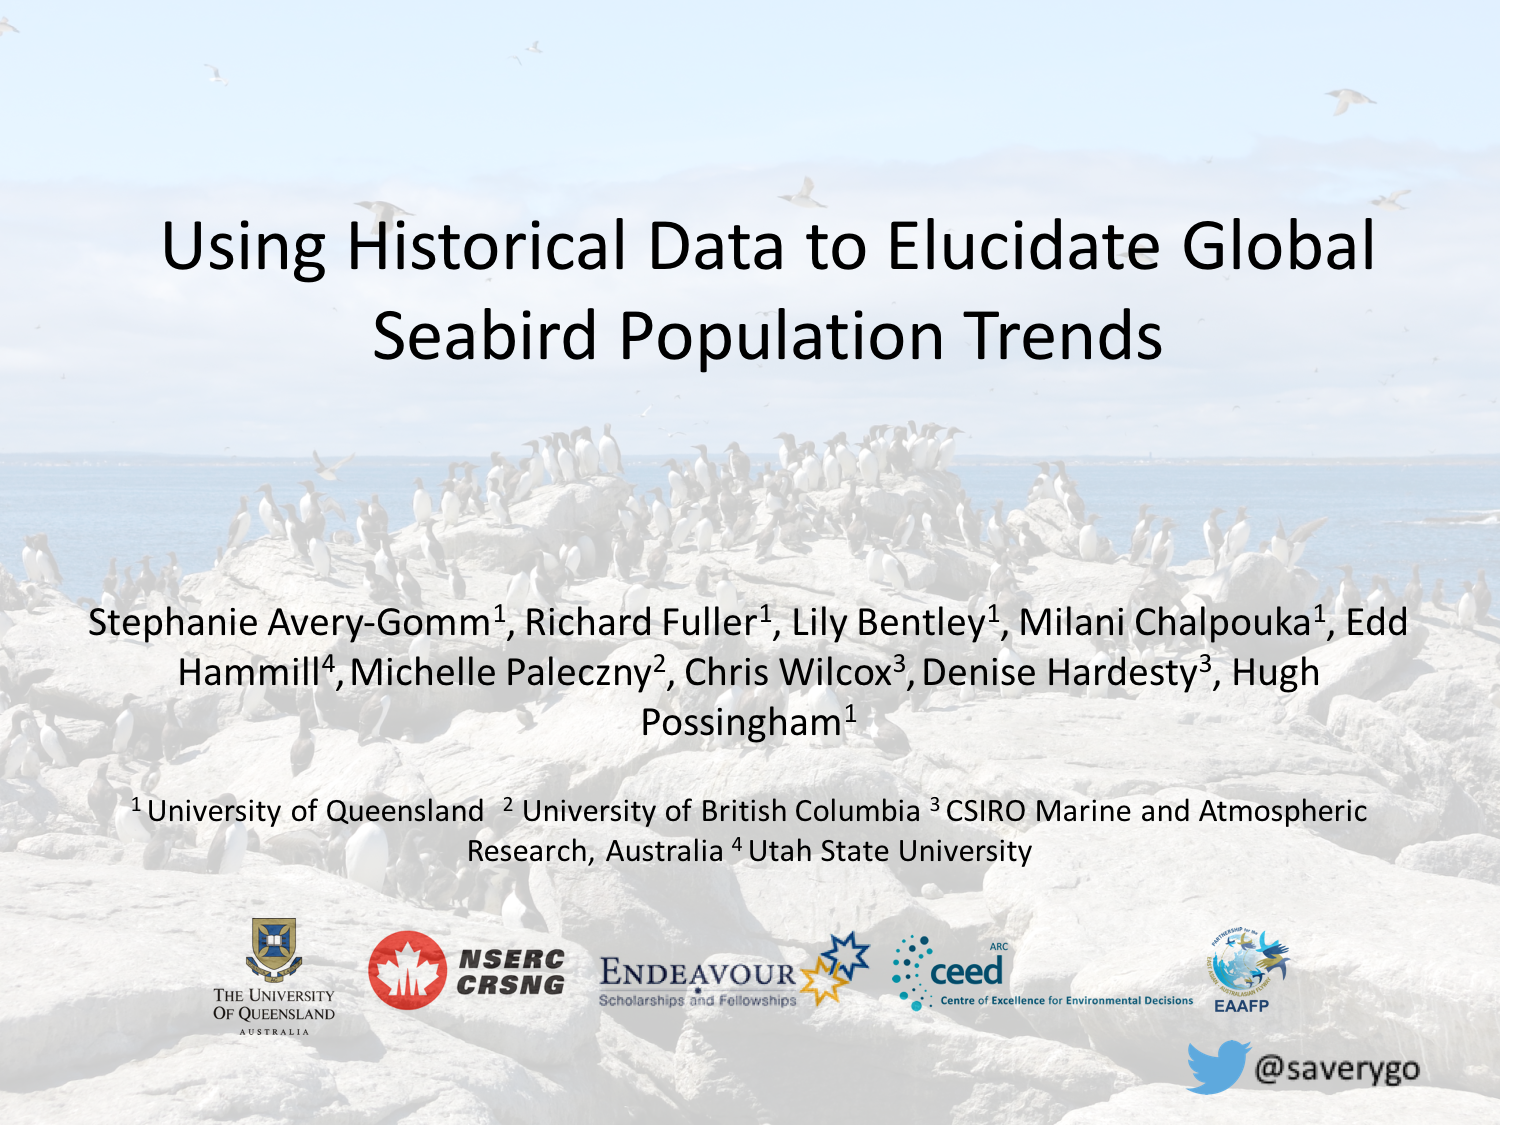 1 #WSTC3 Efforts to coordinate #conservation at an international scale require a better understanding of global #seabird population trends. https://t.co/jAluKxFTyD